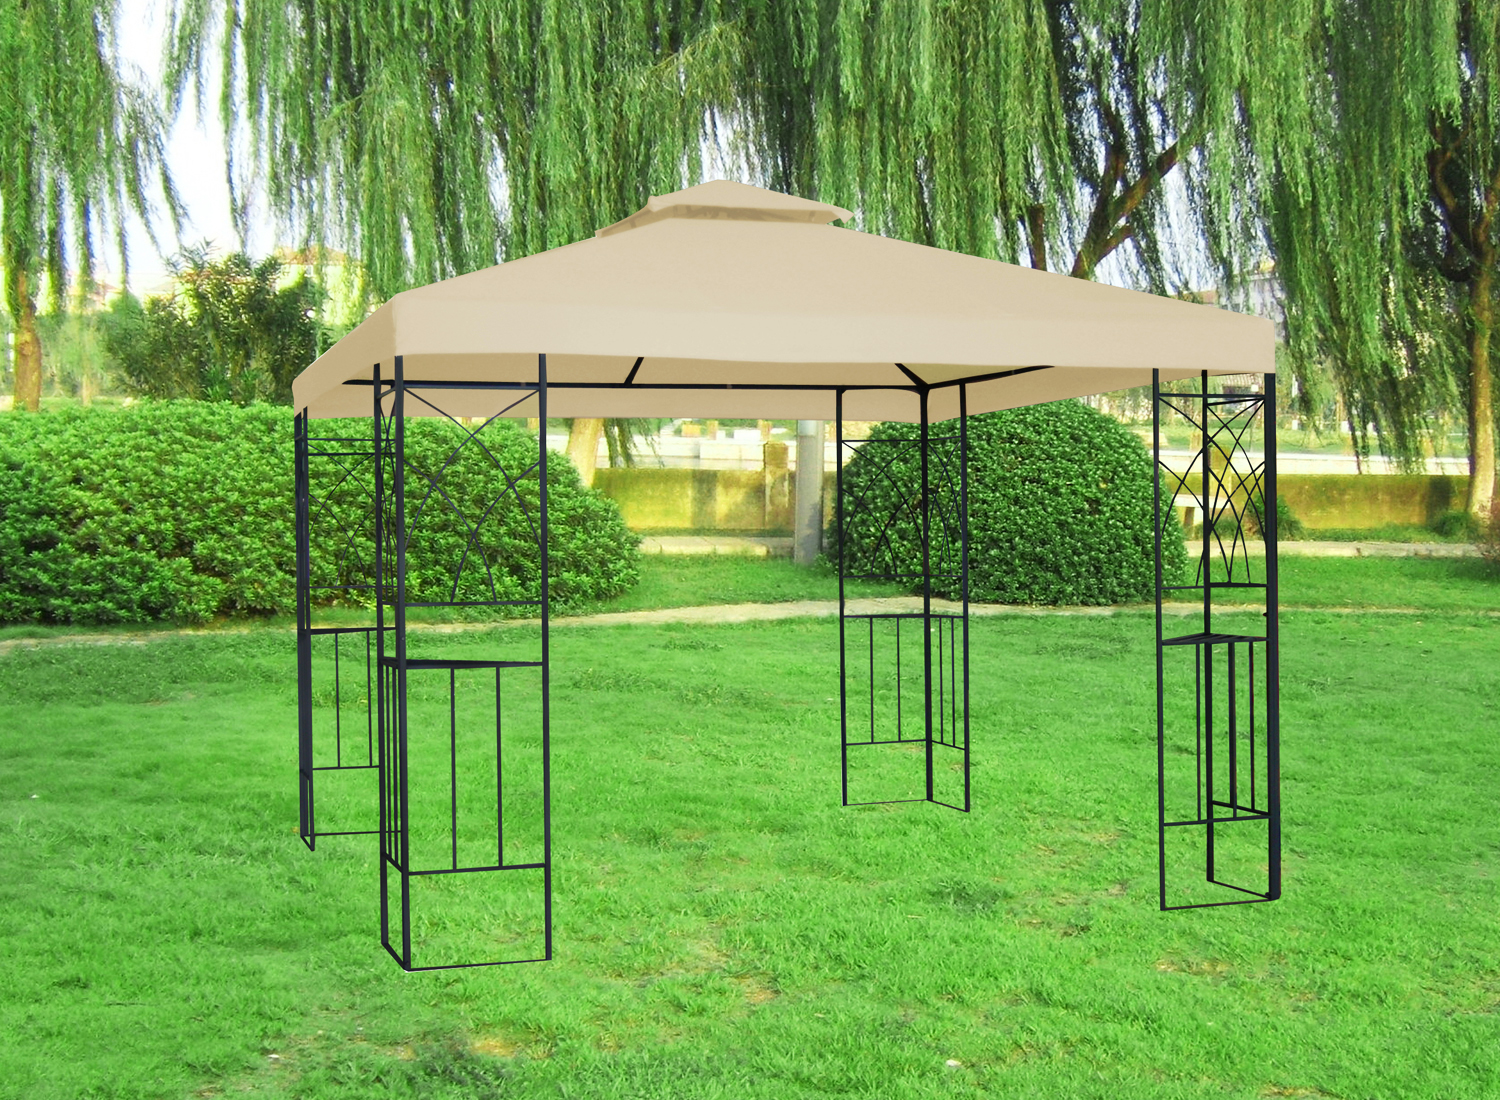 Steel Outdoor Shelters : Outdoor metal shelters backyard car shelter